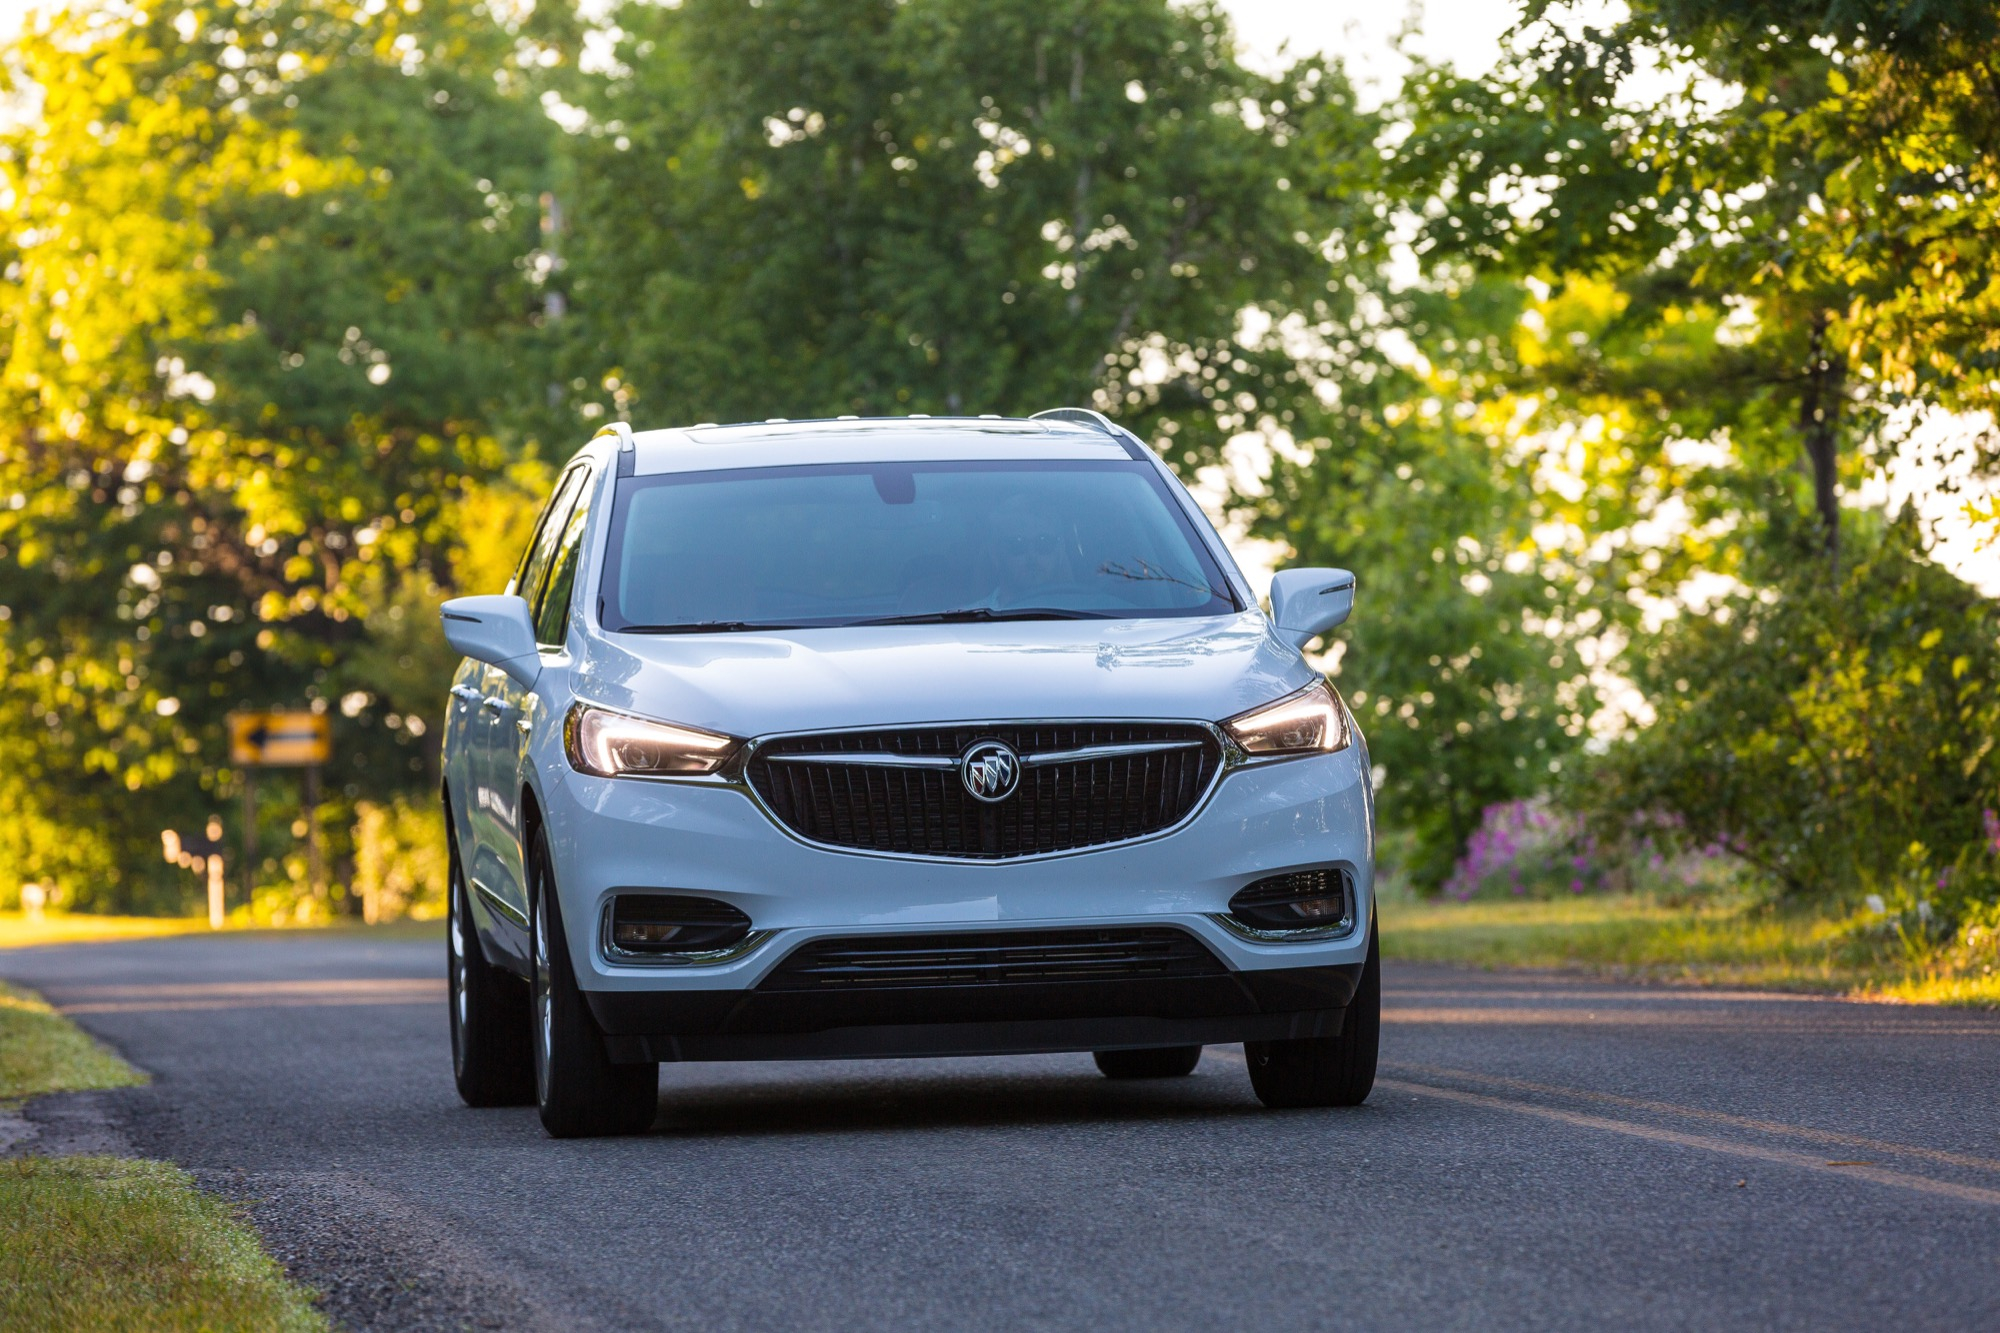 Gm Slammed In Latest Reliability Survey | Gm Authority 2022 Buick Enclave Oil Capacity, Owner's Manual, Problems